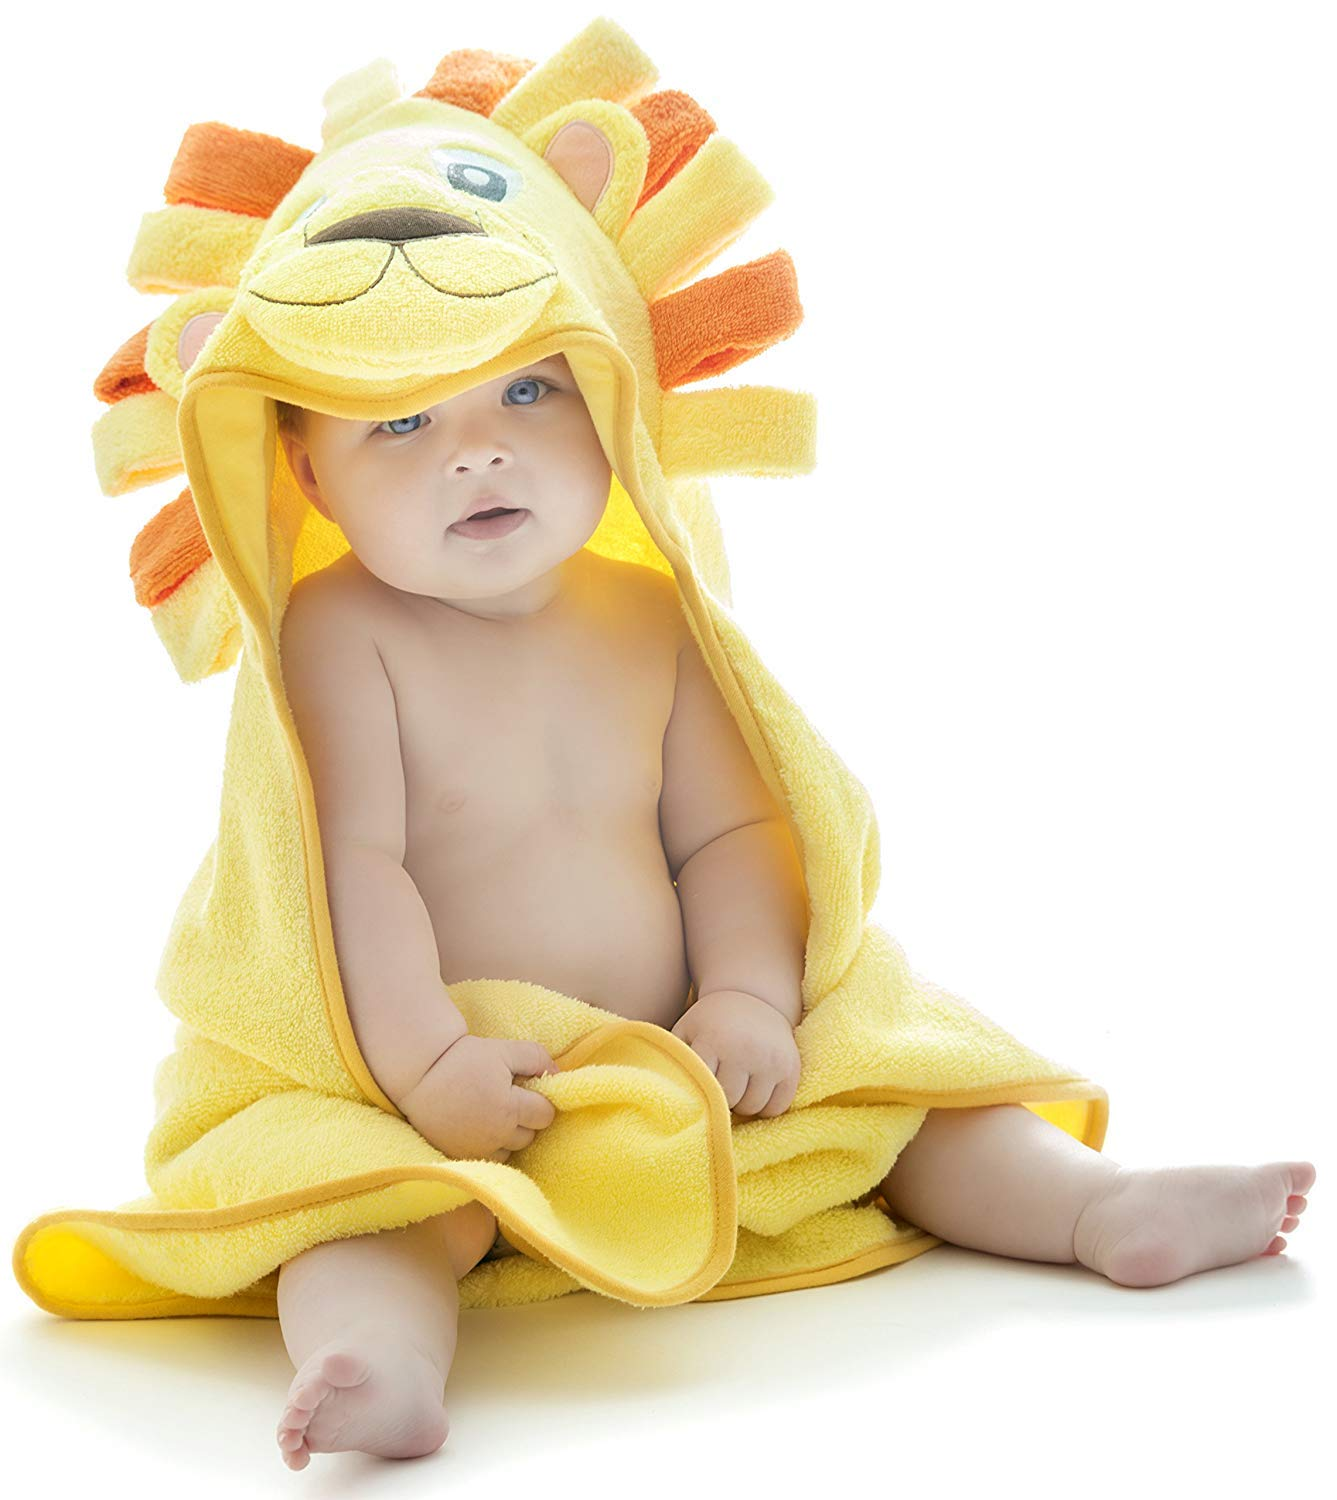 Hooded Baby Towel, Lion Design from Little Tinkers World, Ultra Absorbent, Durable Bath Towel Perfect for Girls and Boys by Little Tinkers World by Little Tinkers World